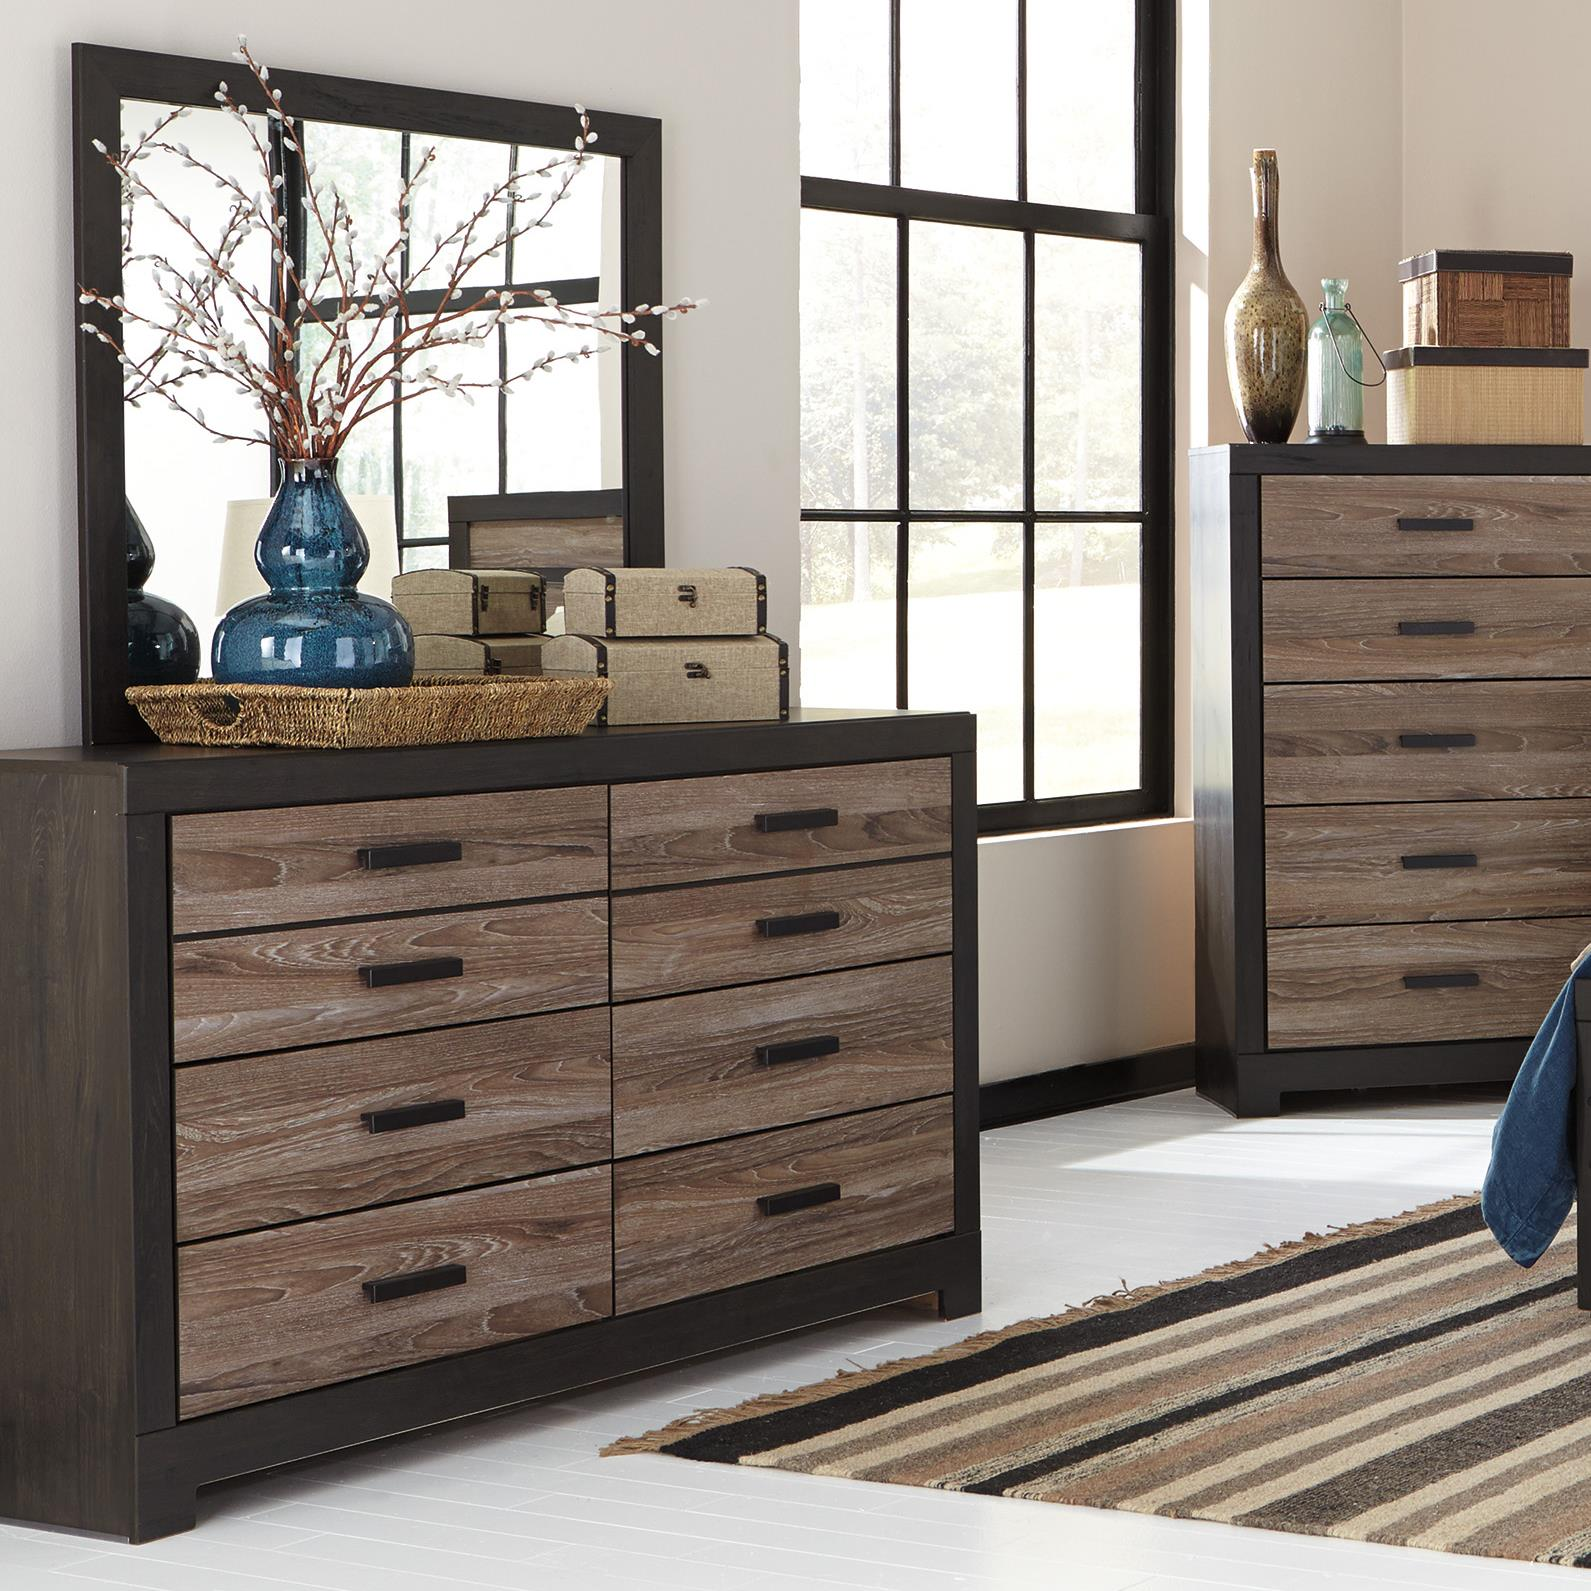 Harlinton Dresser & Bedroom Mirror by Signature Design by Ashley at Beds N Stuff